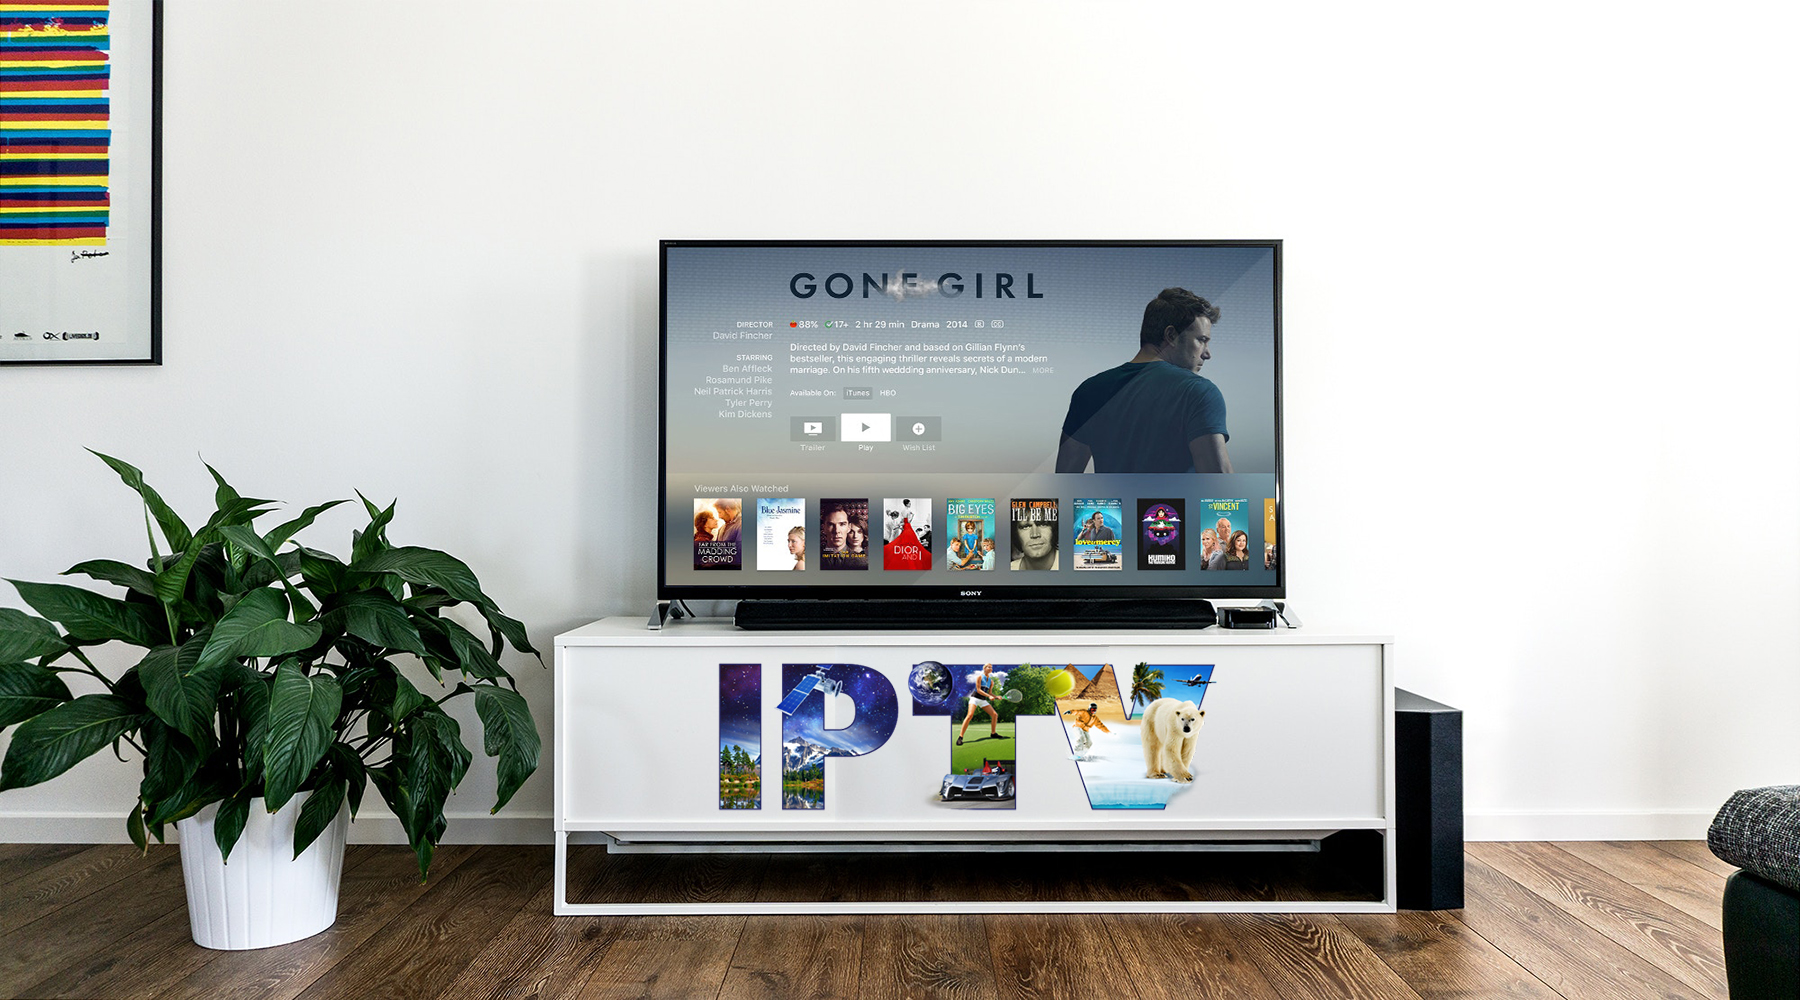 Pix TV: Premium IPTV Available on Roku and Android